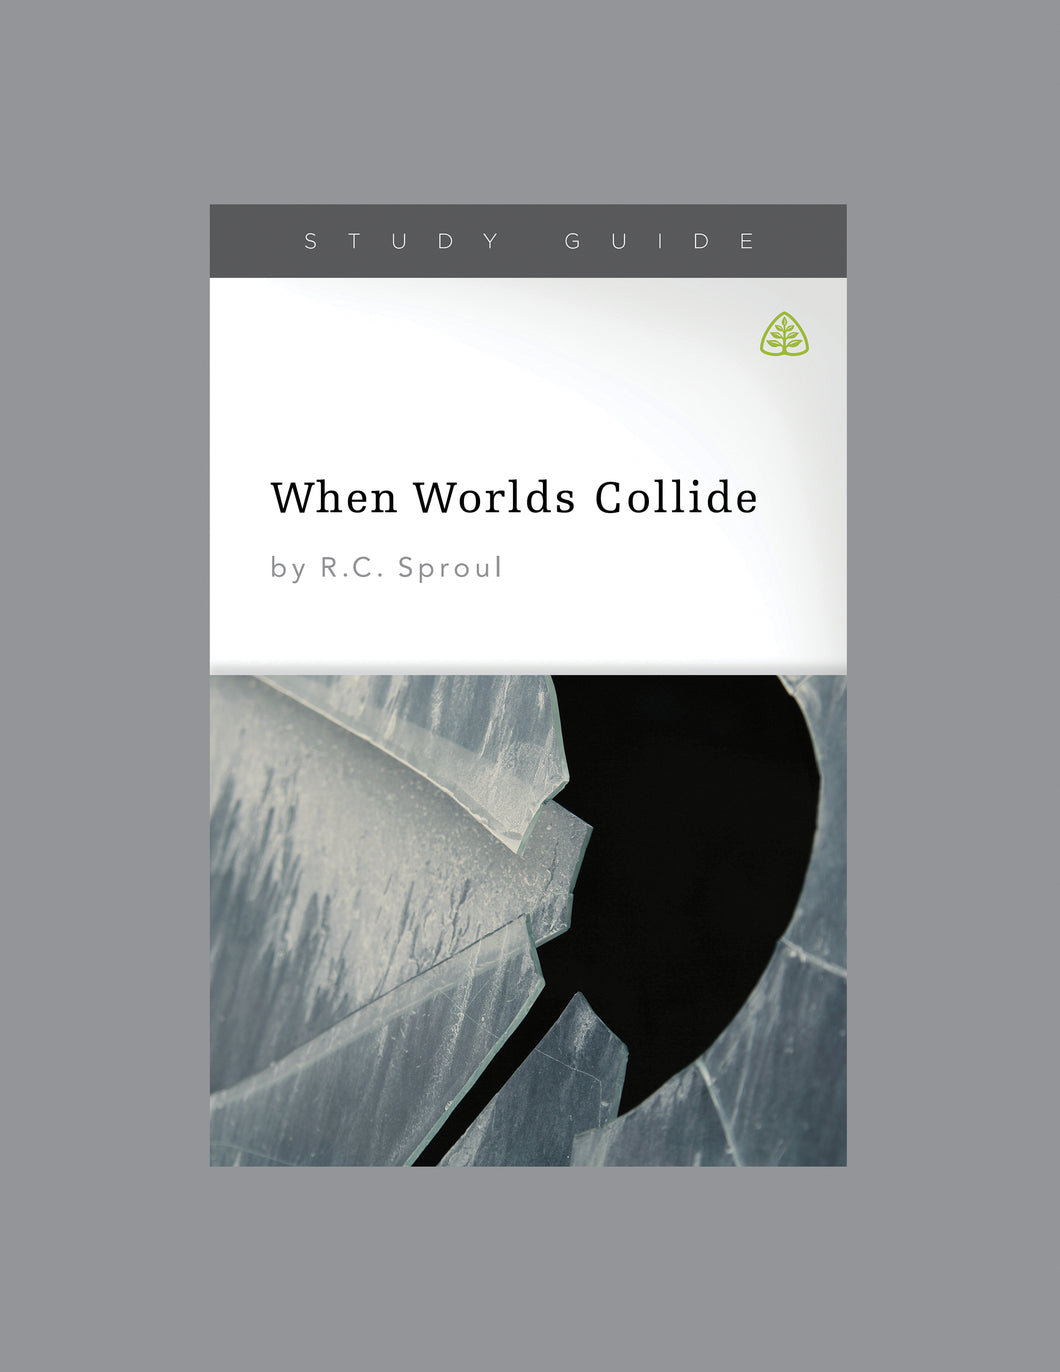 When Worlds Collide — Download Study Guide PDF (1 License)